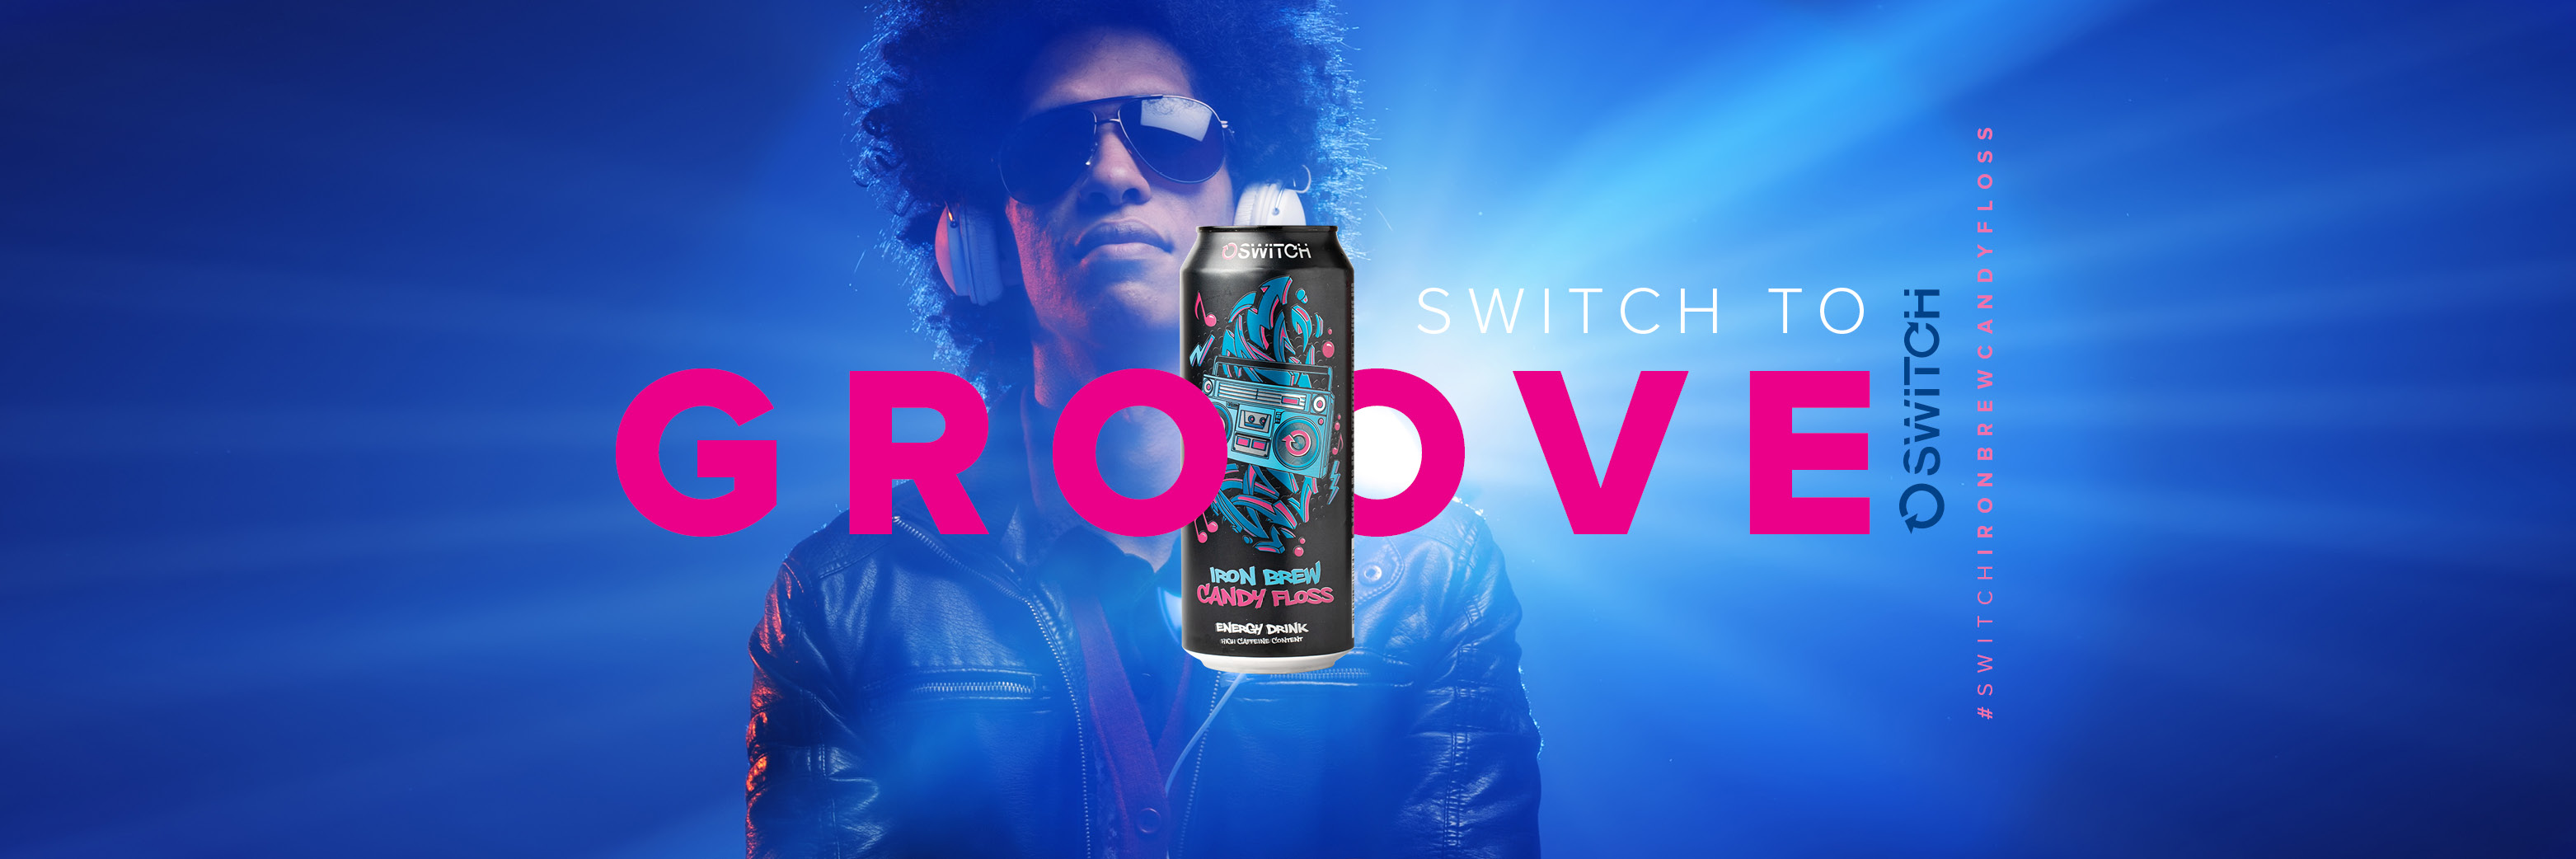 Switch to groove